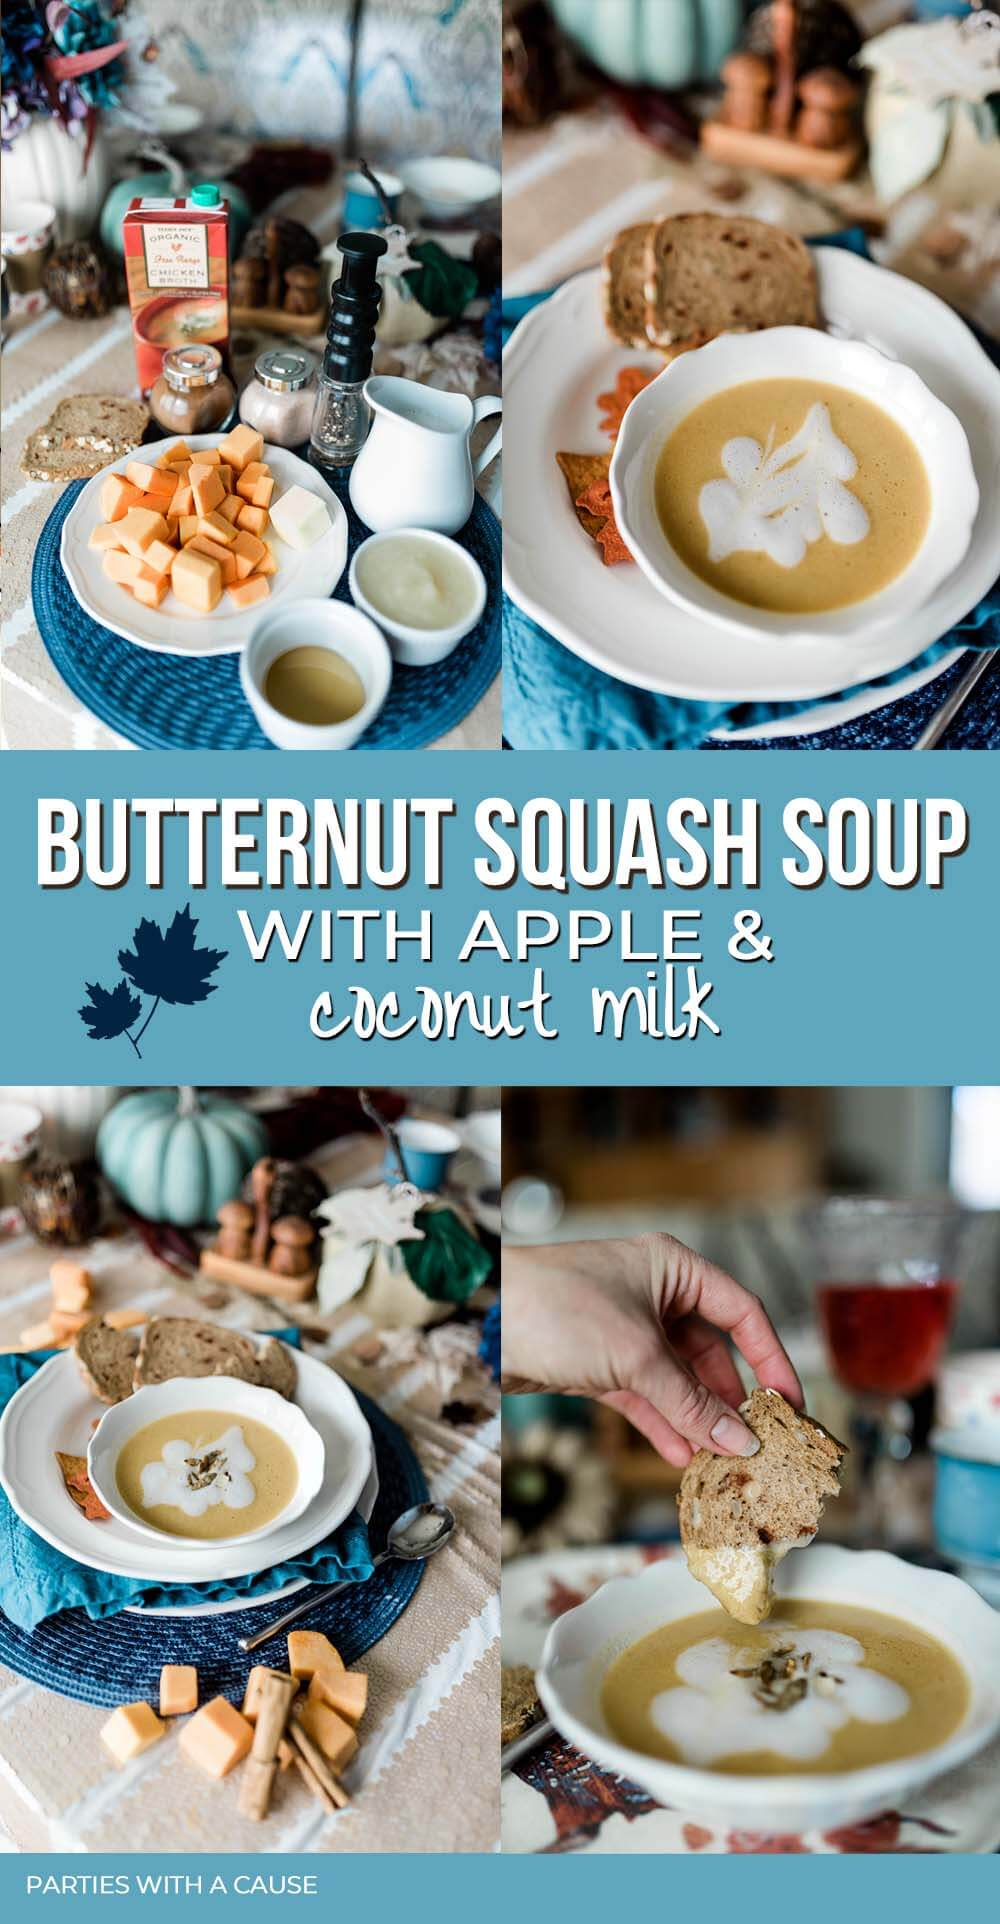 Butternut squash soup with apple and coconut milk by Salt Lake Healthy Hostess